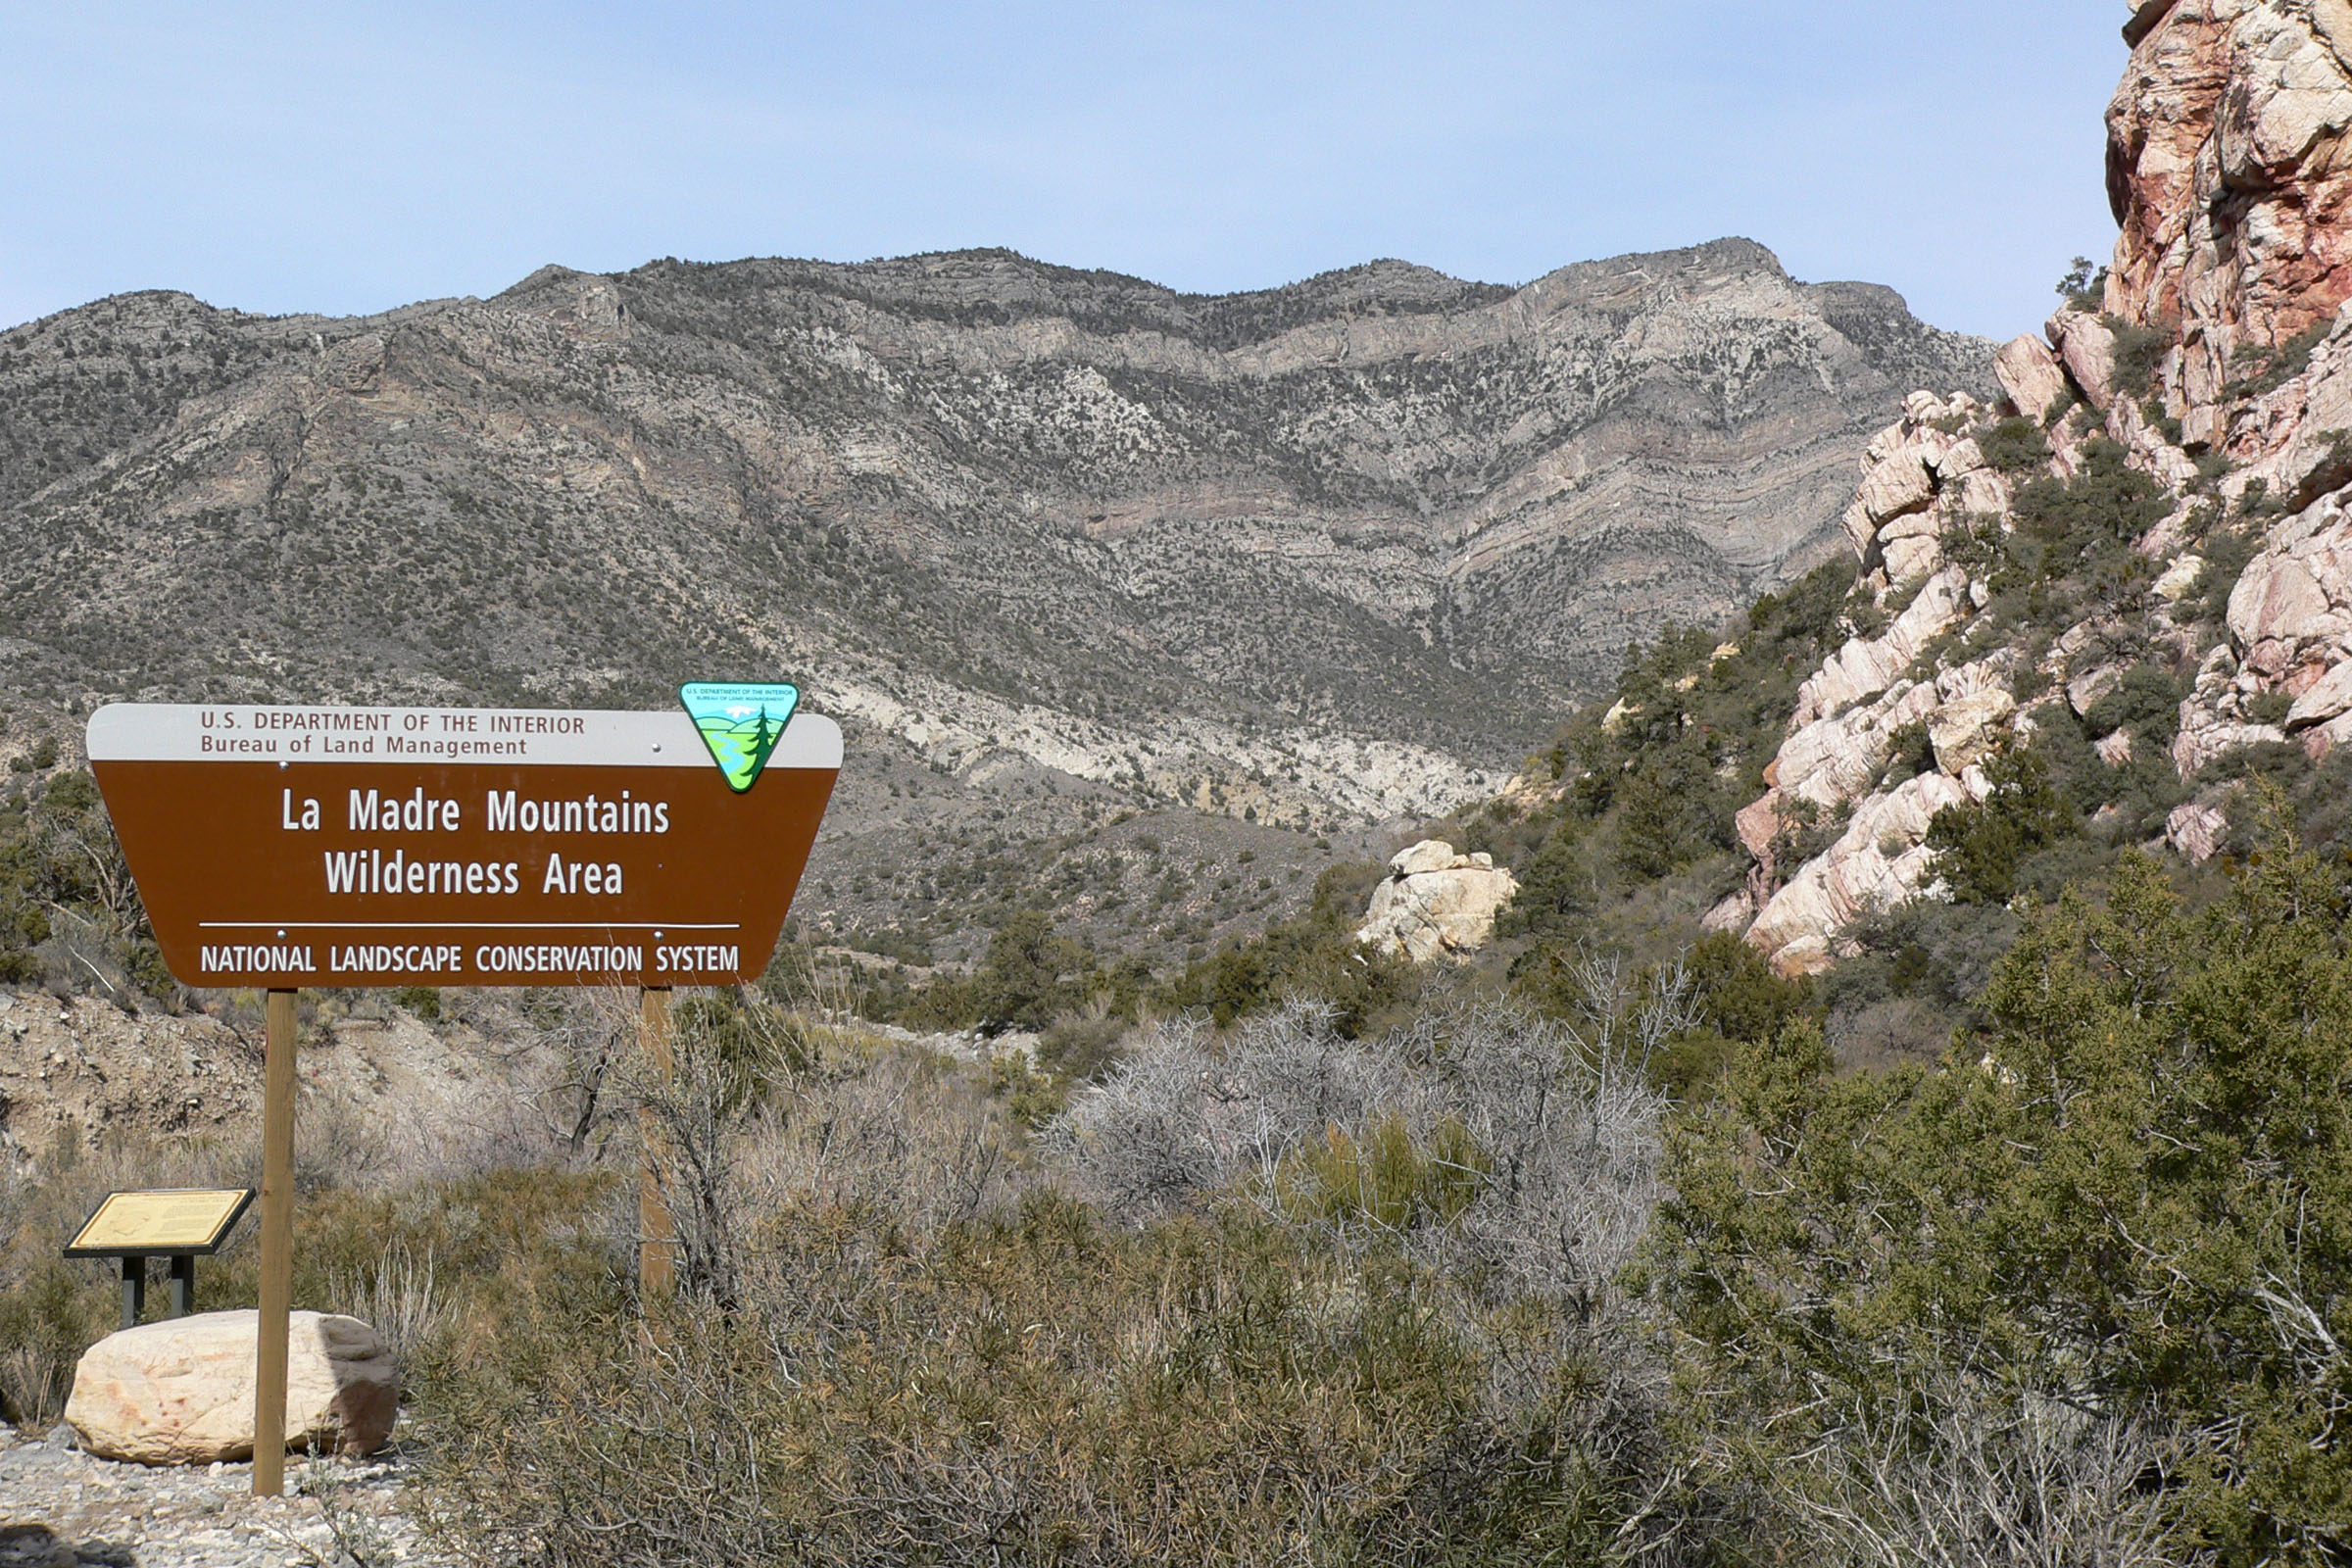 La_Madre_Mountains_Wilderness_Area_1.jpg